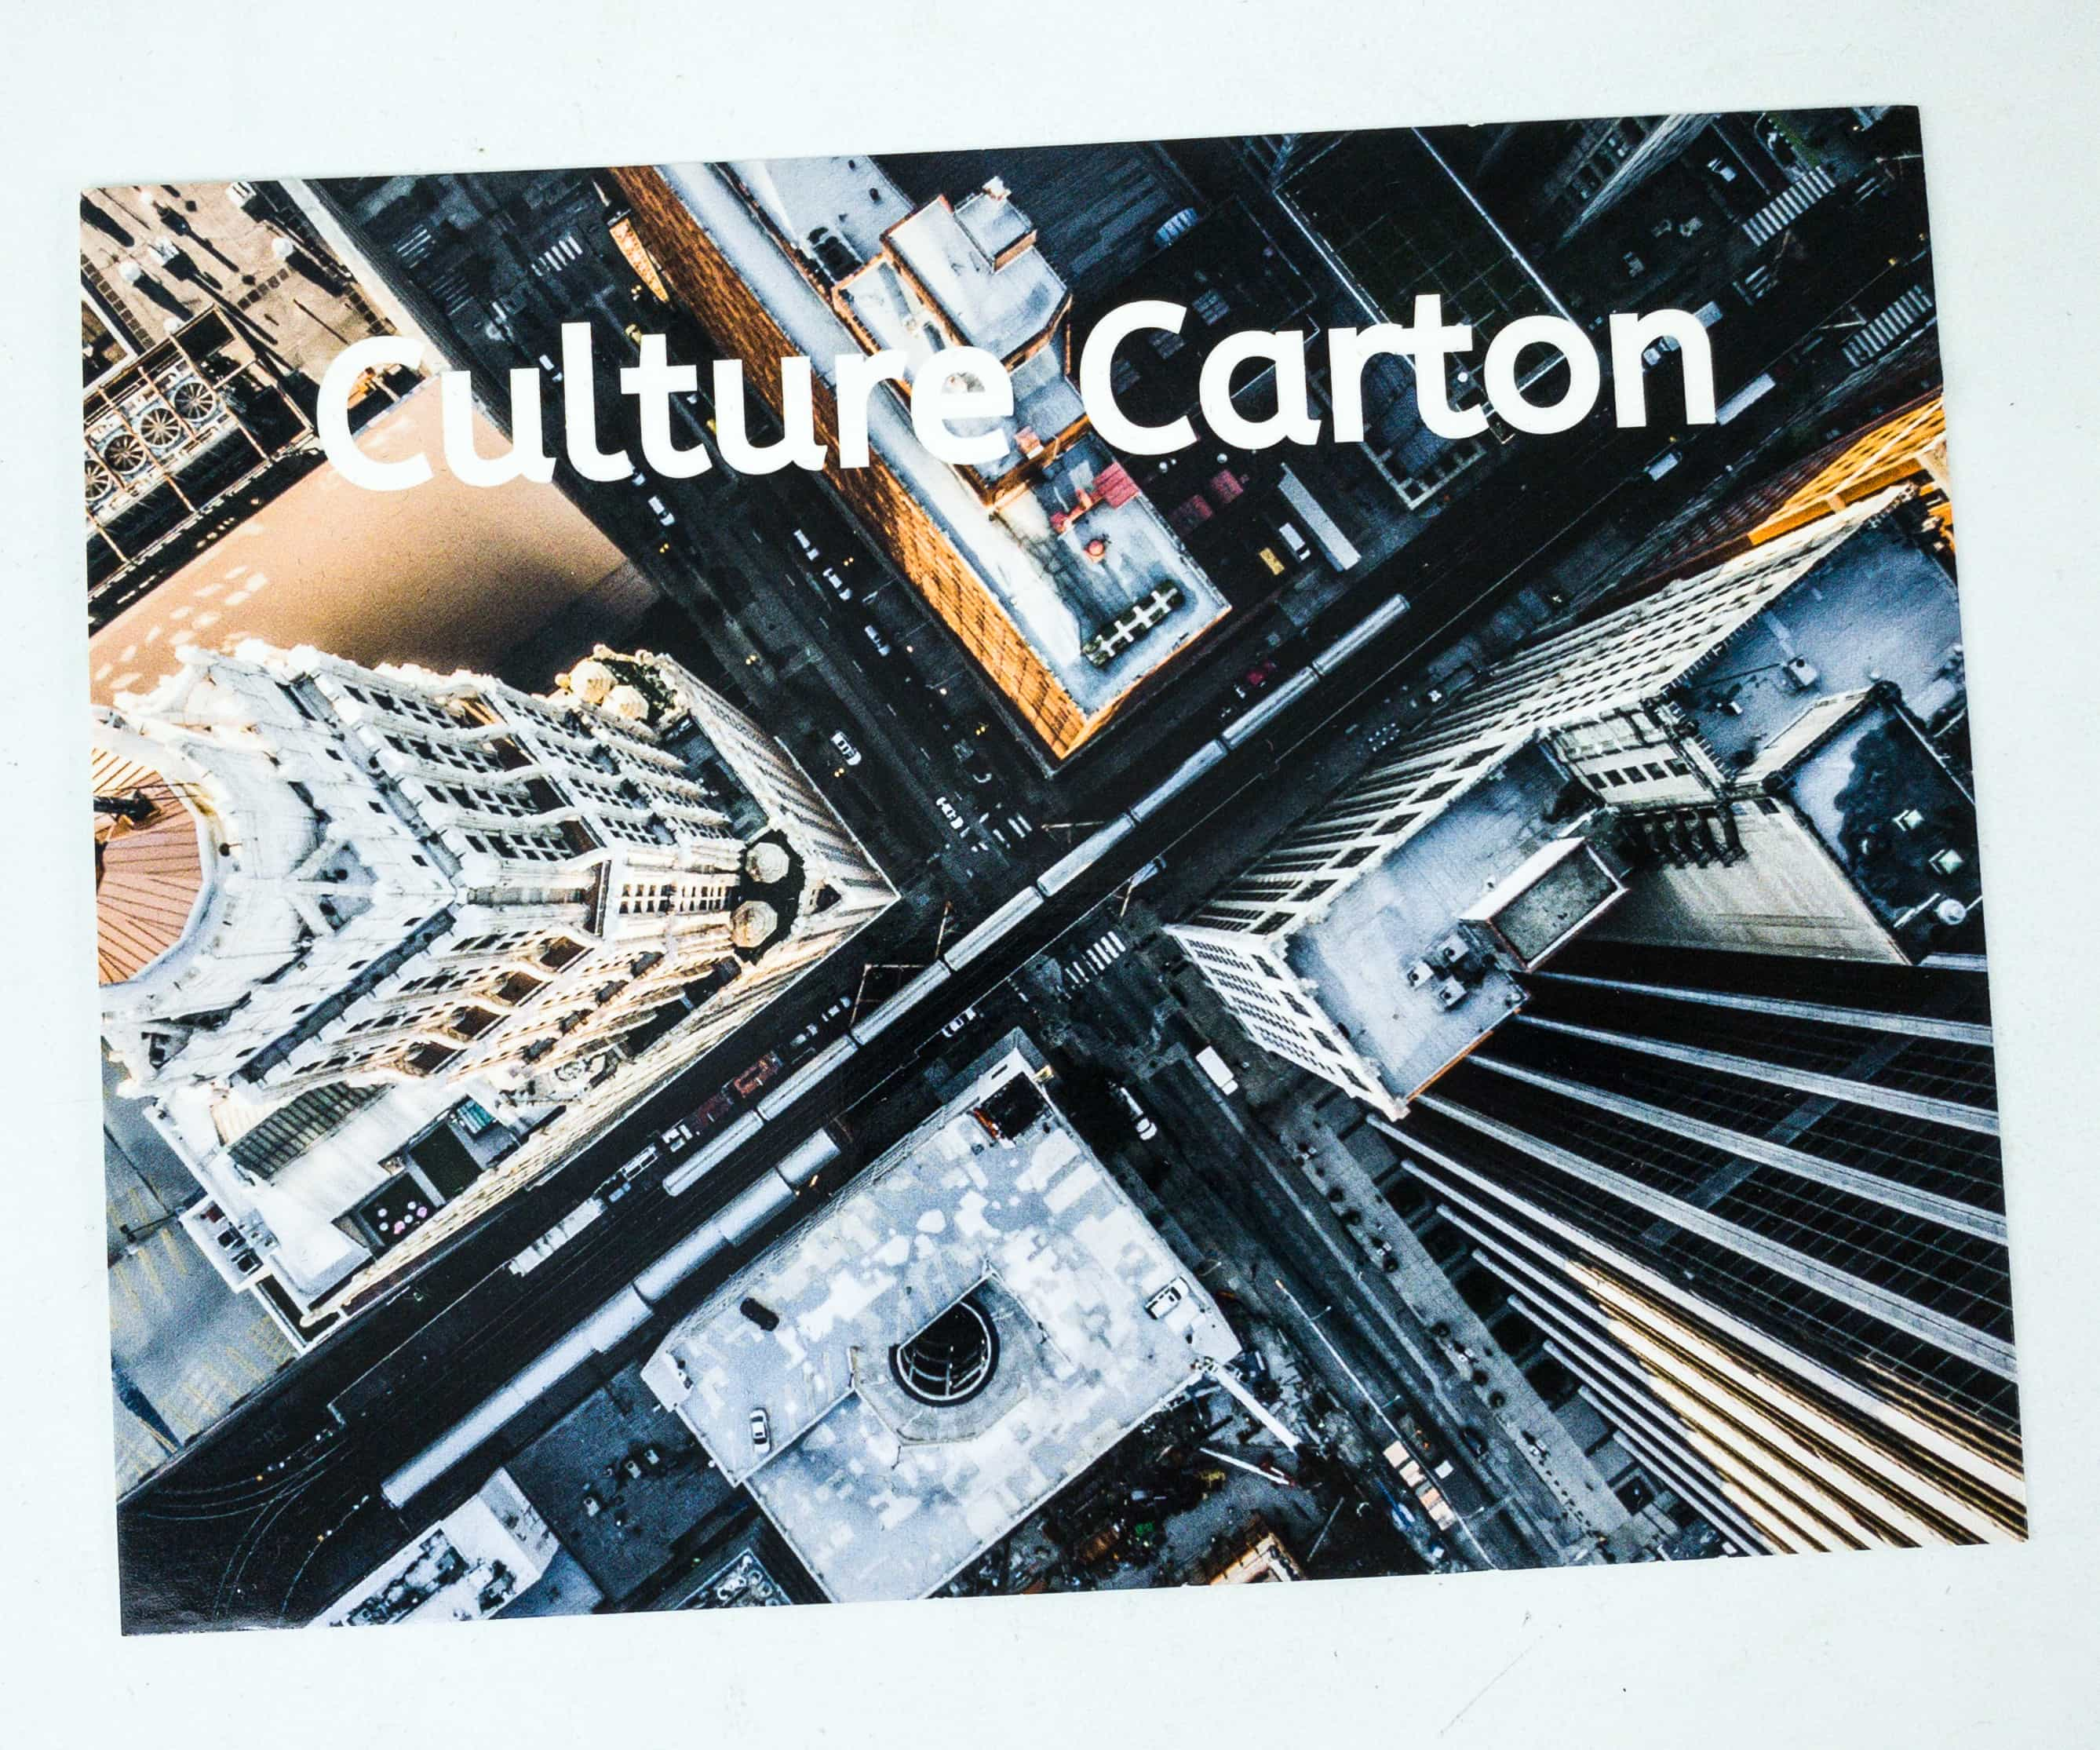 Culture Carton August 2019 Subscription Box Review + Coupon